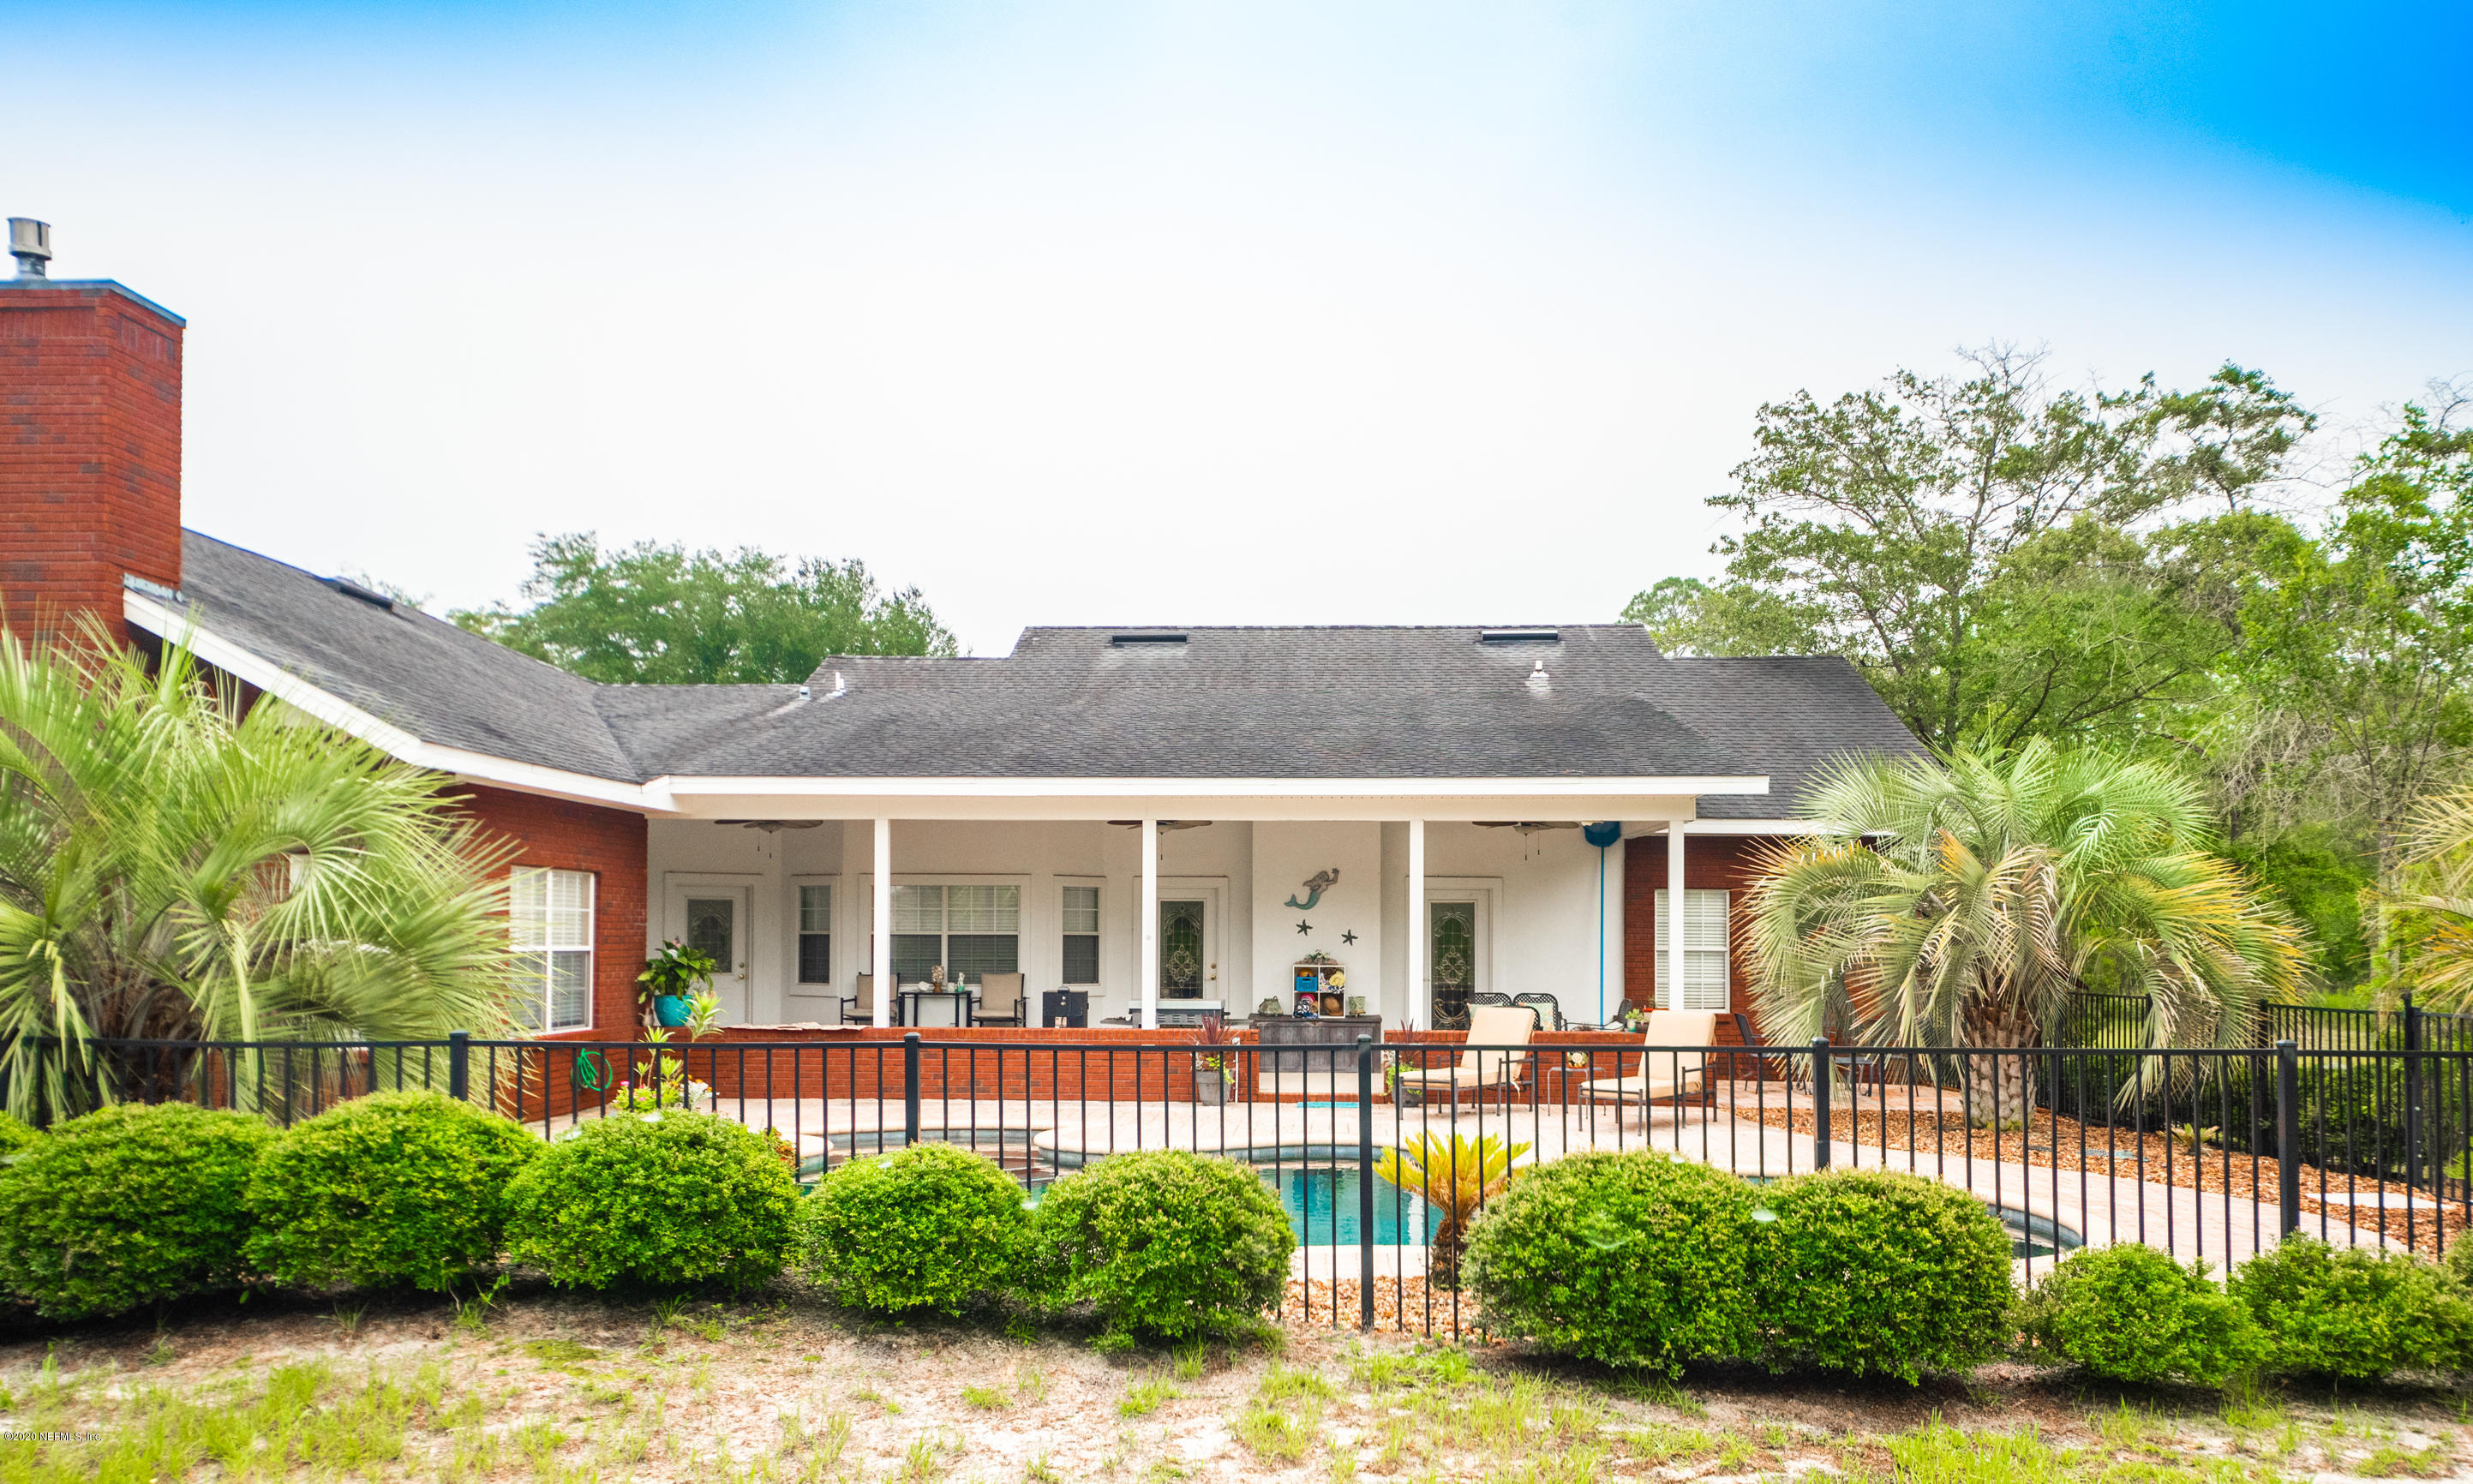 14394 BOB BURNSED, GLEN ST. MARY, FLORIDA 32040, 3 Bedrooms Bedrooms, ,3 BathroomsBathrooms,Residential,For sale,BOB BURNSED,1058374